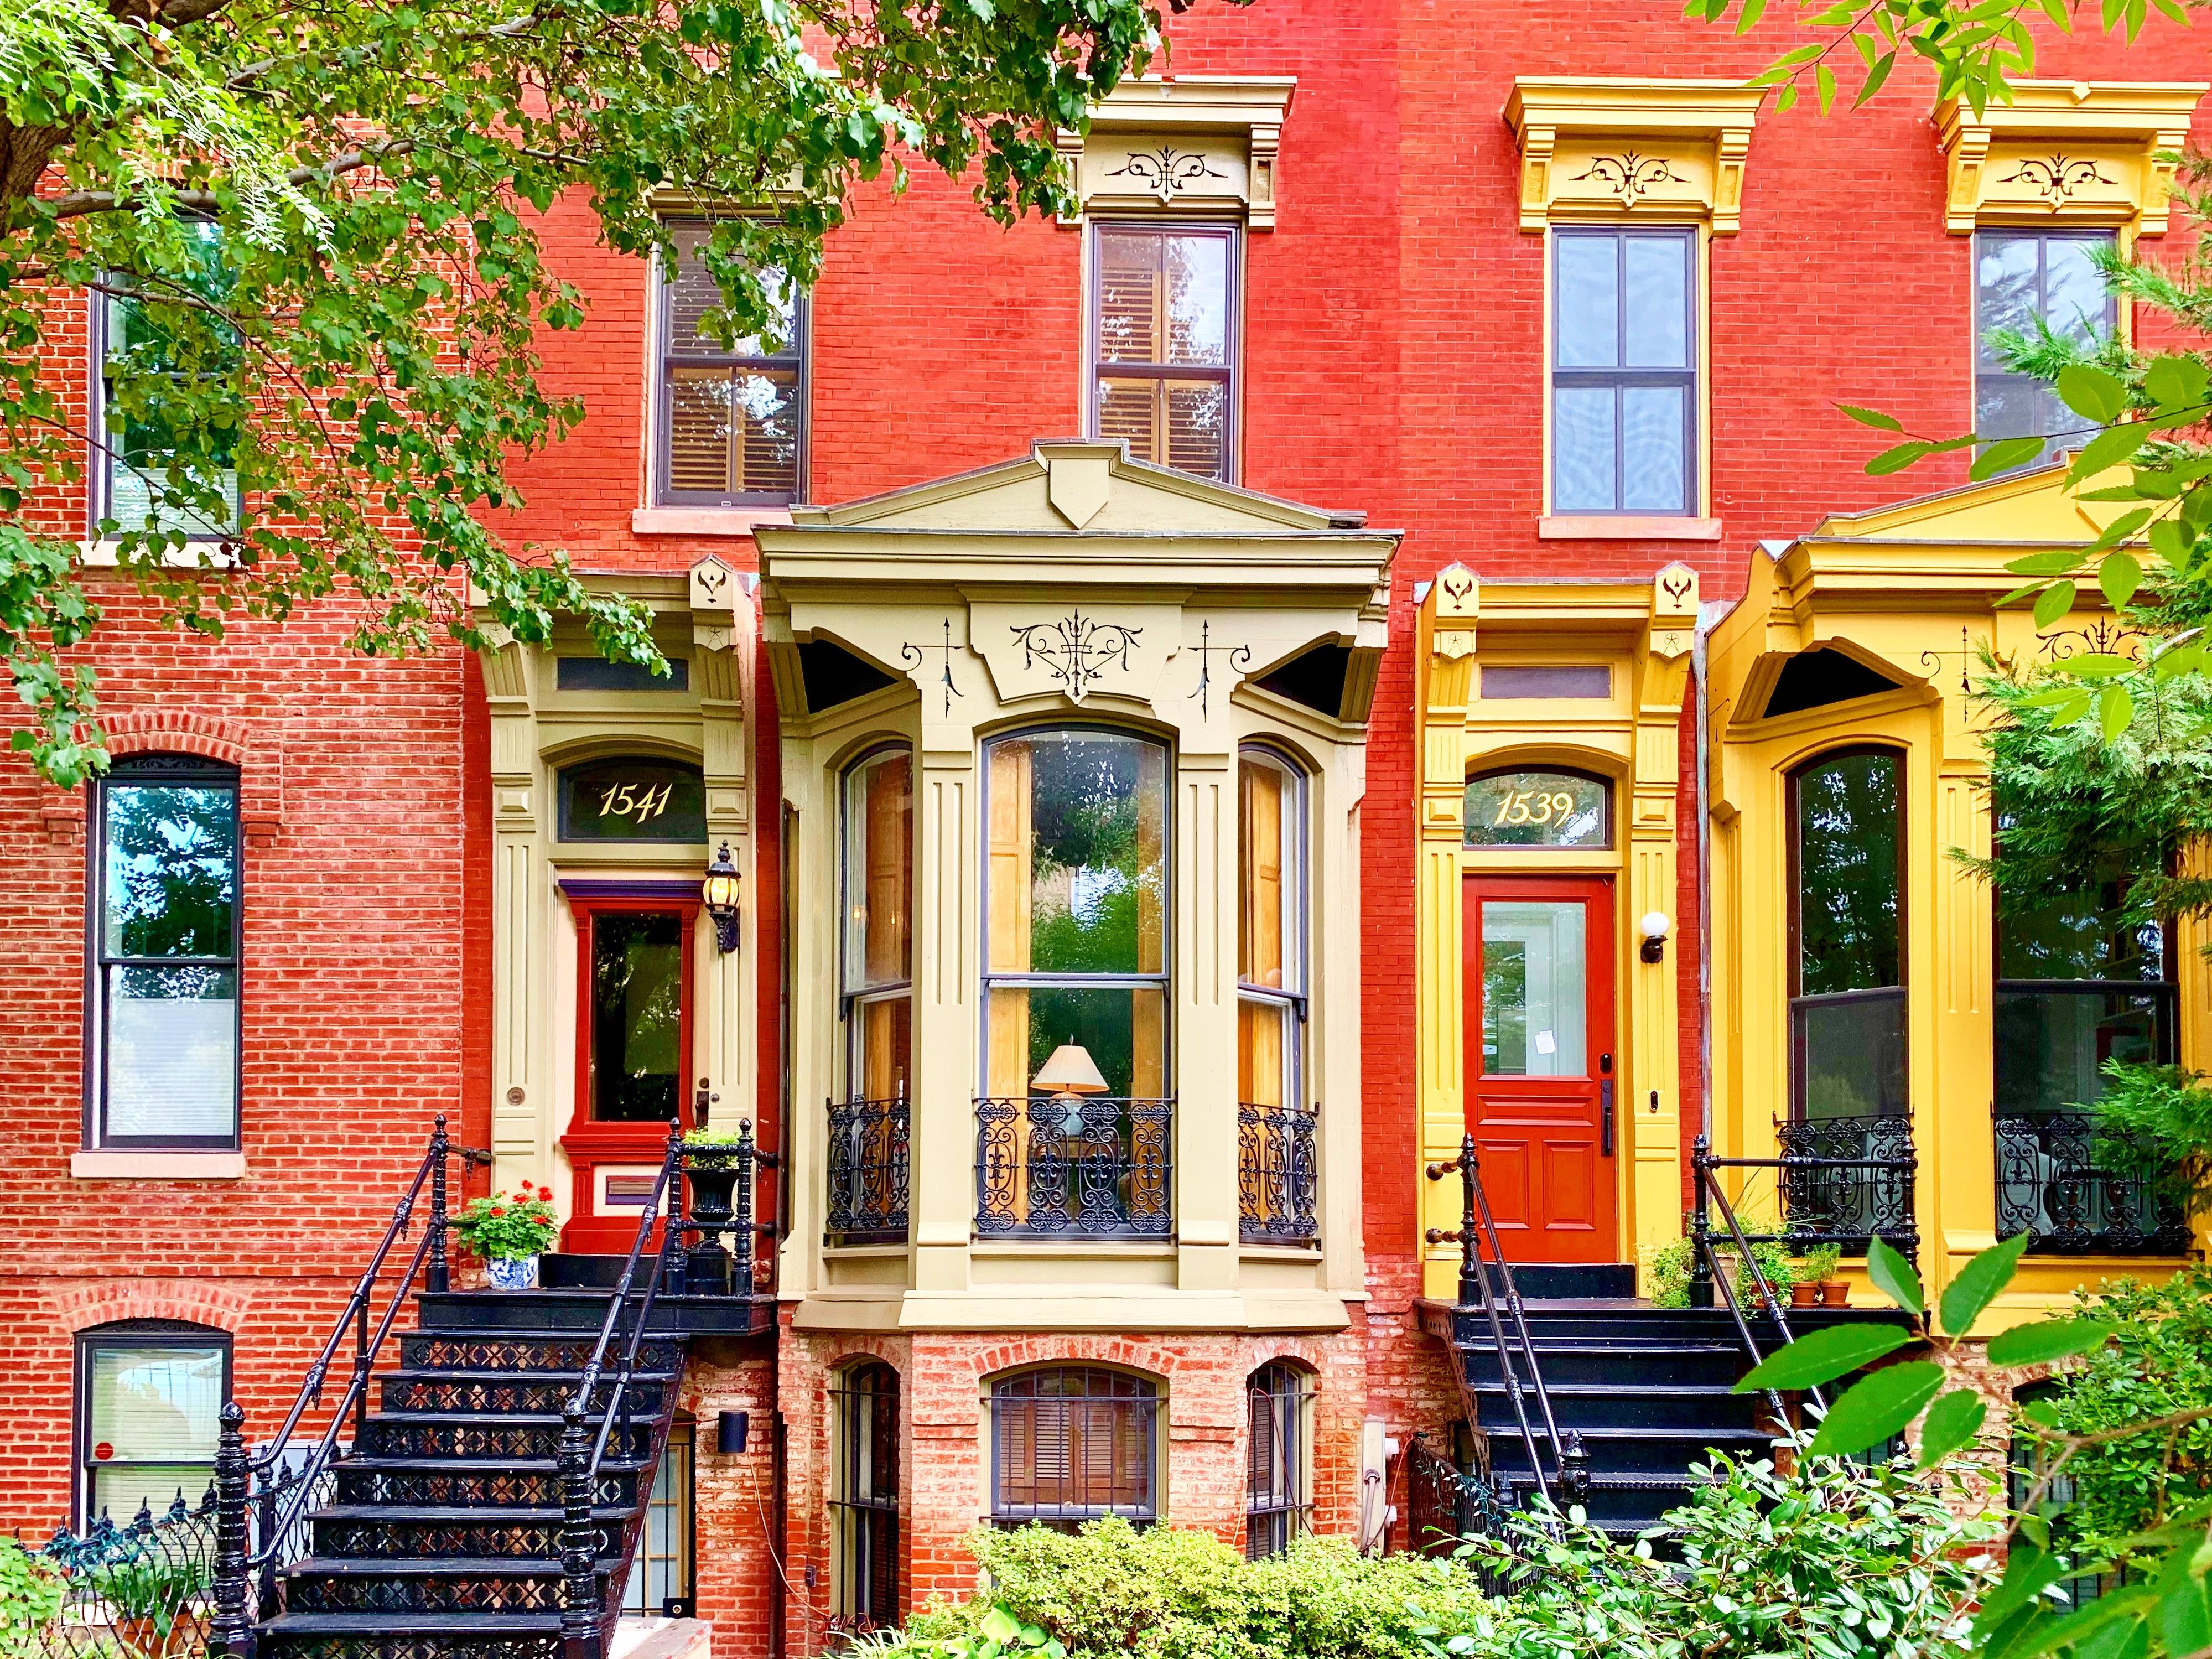 Luxury Real Estate & Homes For Sale in Shaw, Washington, DC. 8th Street NW. Artyom Shmatko Luxury Real Estate Agent